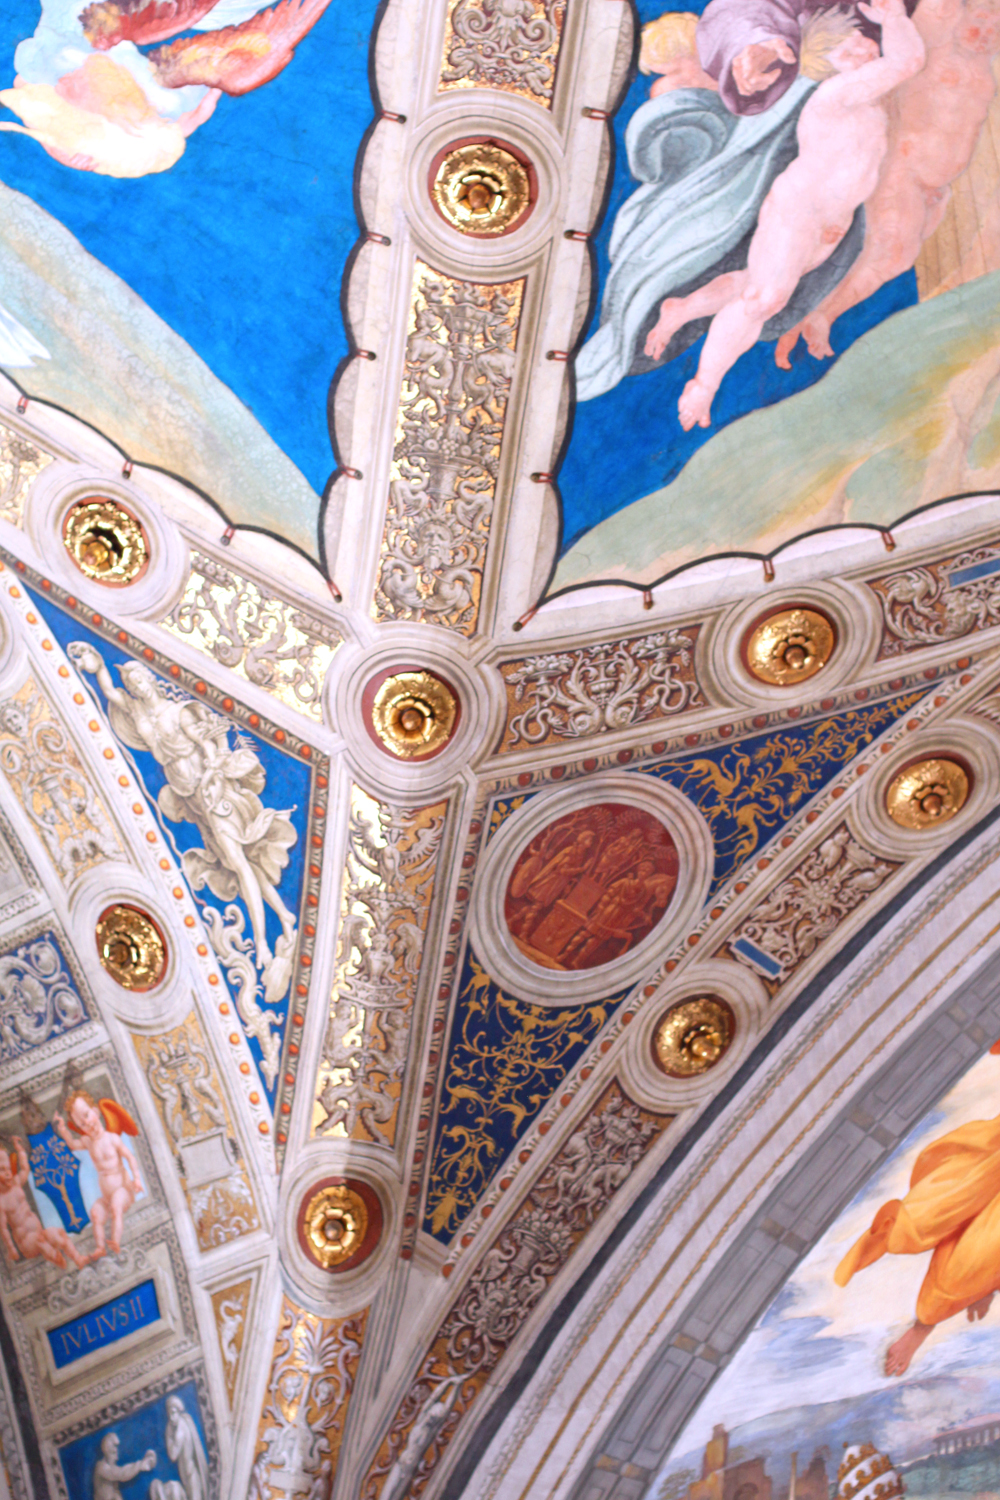 Ceiling frescoes at The Vatican, Rome - travel blog